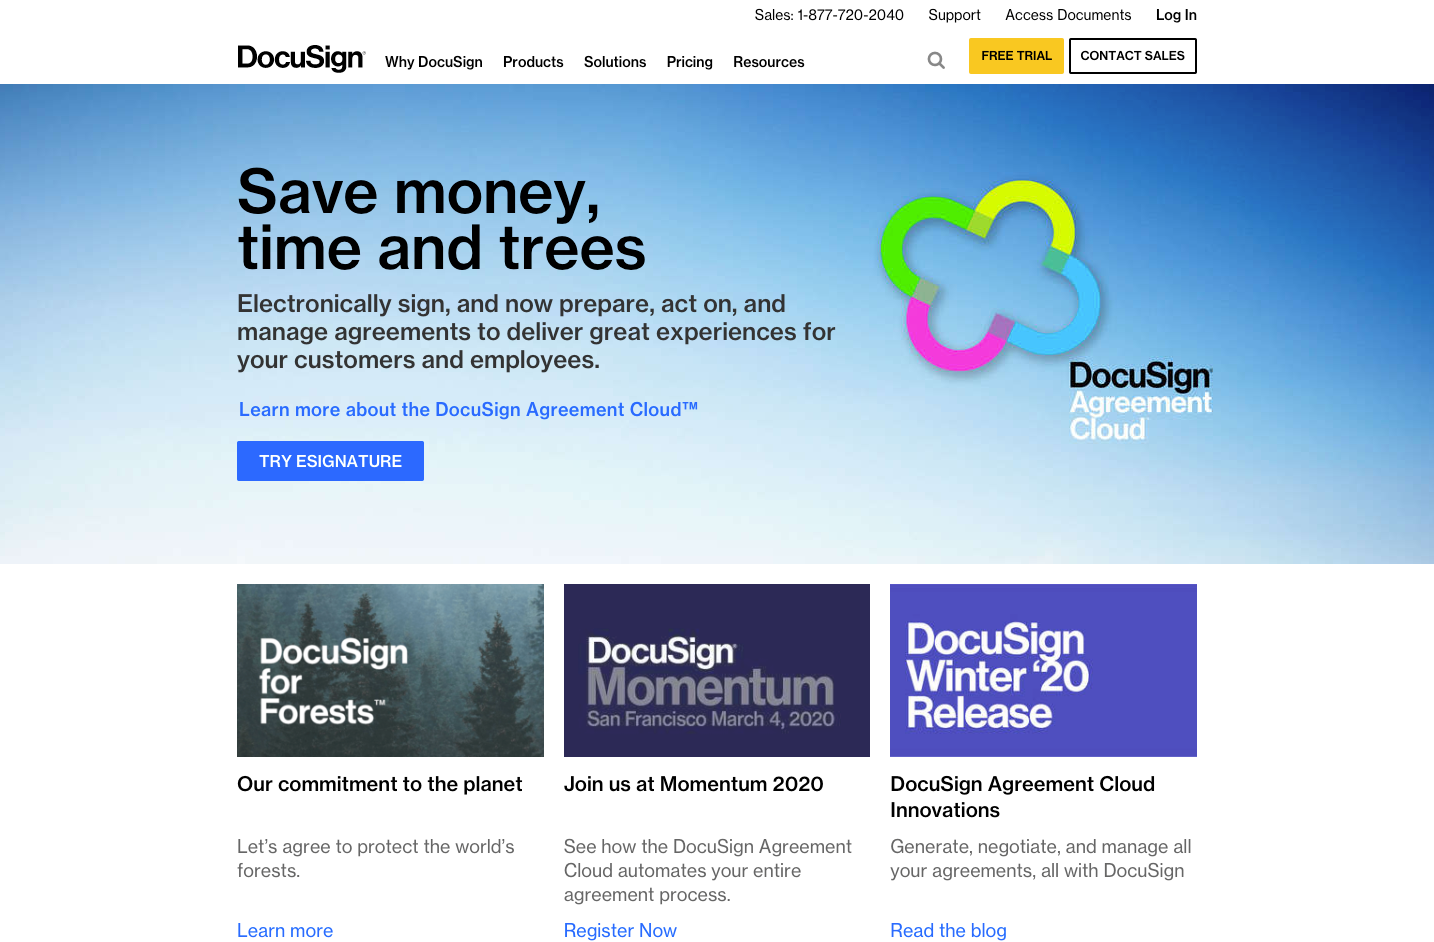 DocuSign website homepage screenshot